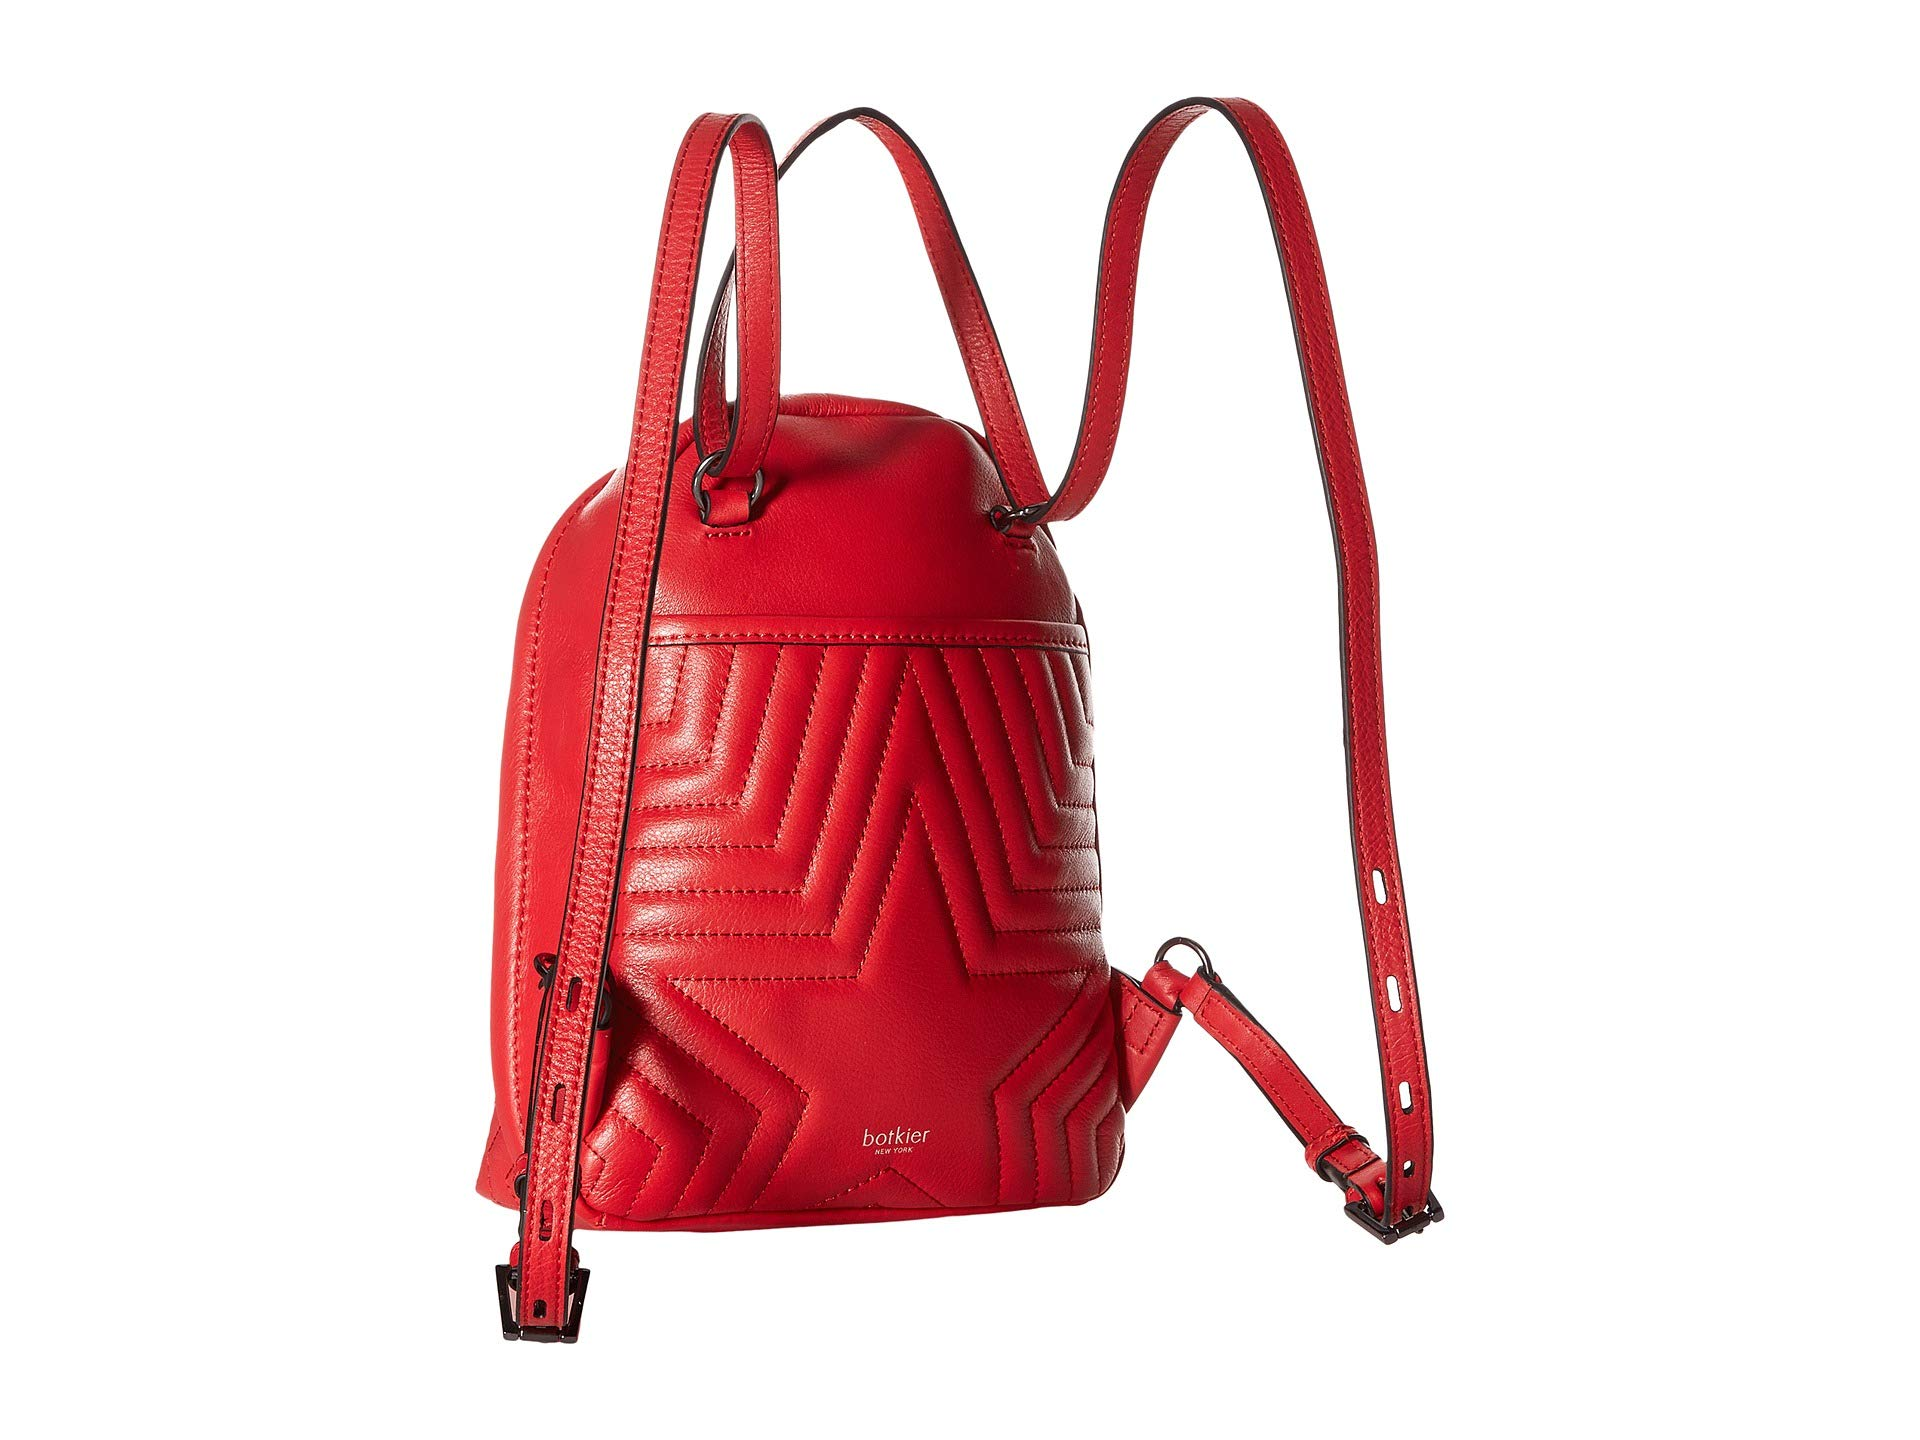 Moto Botkier Backpack Botkier Fire Moto Red Moto Red Botkier Backpack Fire 0HqUOH